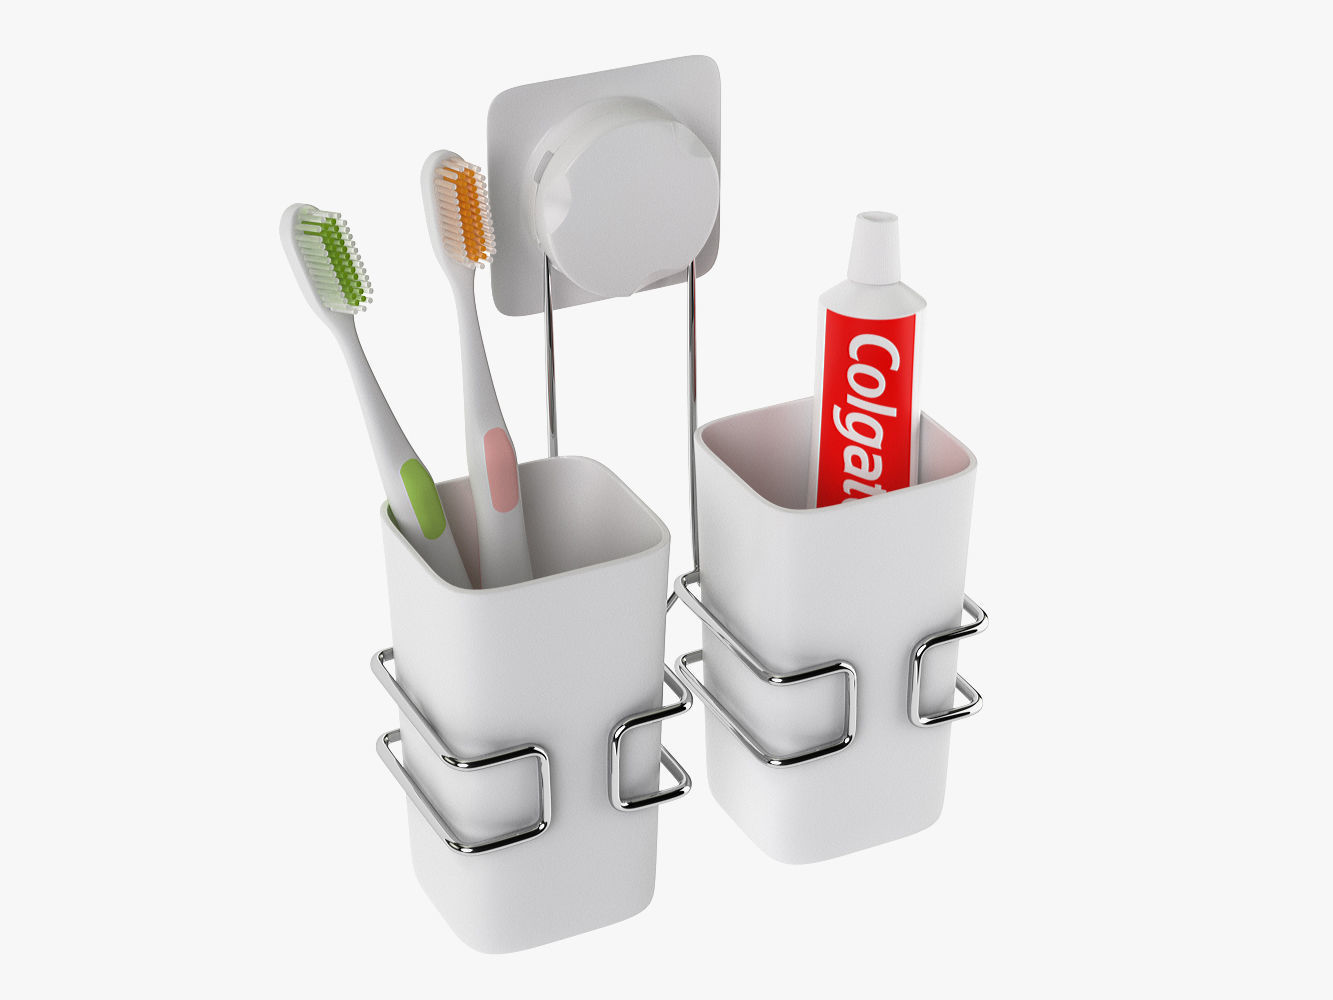 Cup Hanging Bathroom Toothbrush Holder